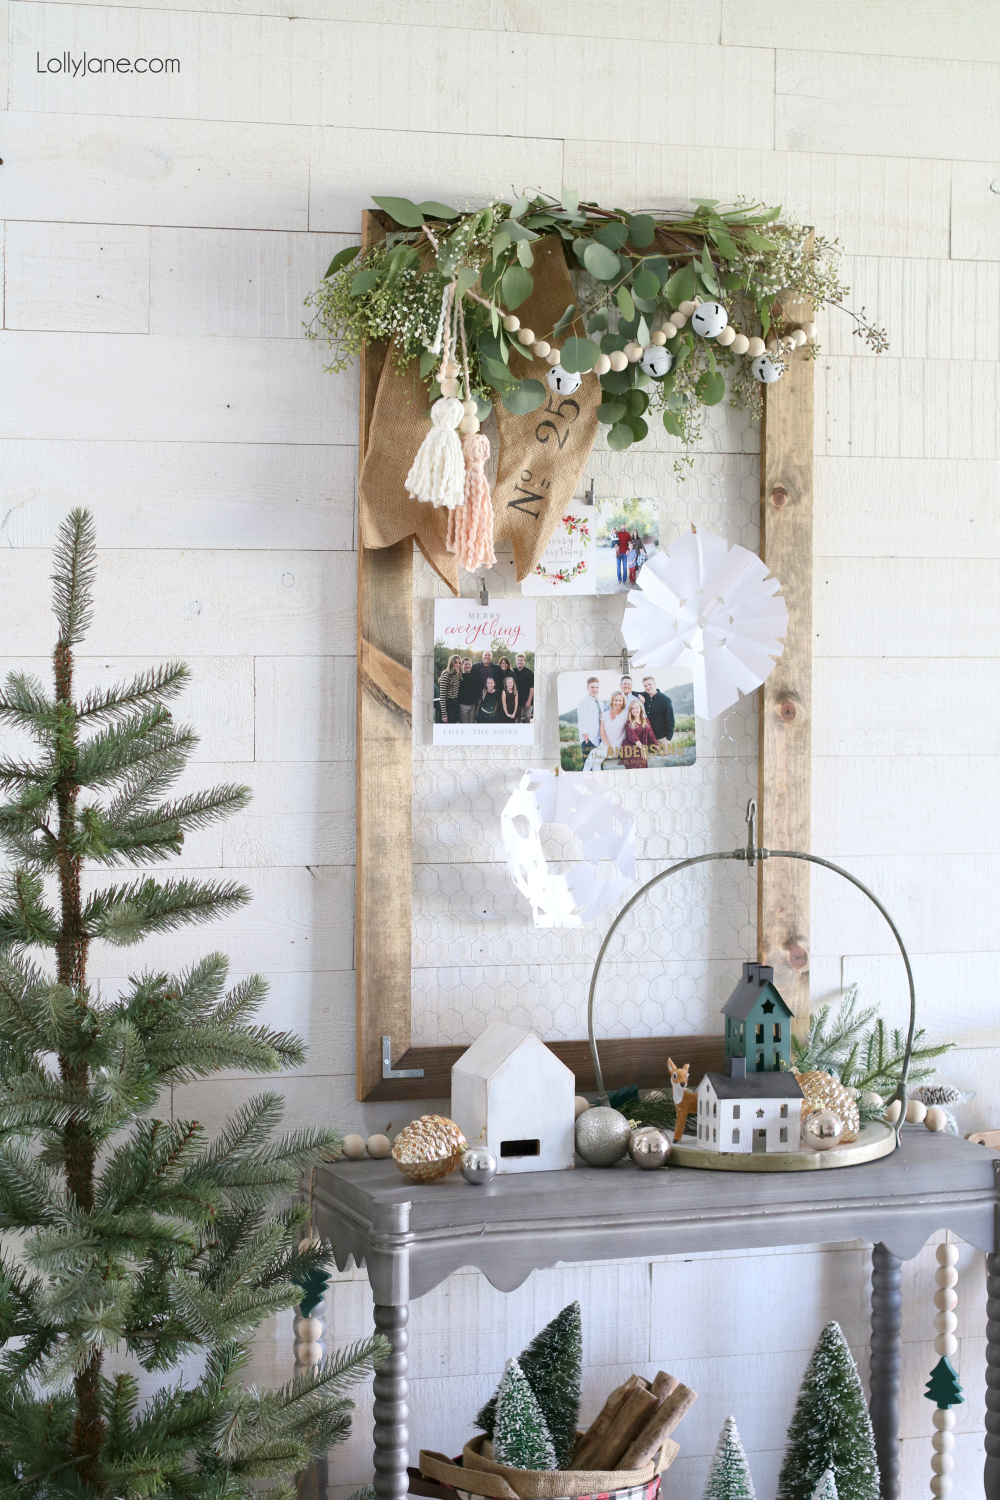 Easiest DIY Christmas Card Holder, top with leaves and this DIY garland + tassels to create the cutest display ever! #diy #garland #christmasdecor #wintervignette #diytassels